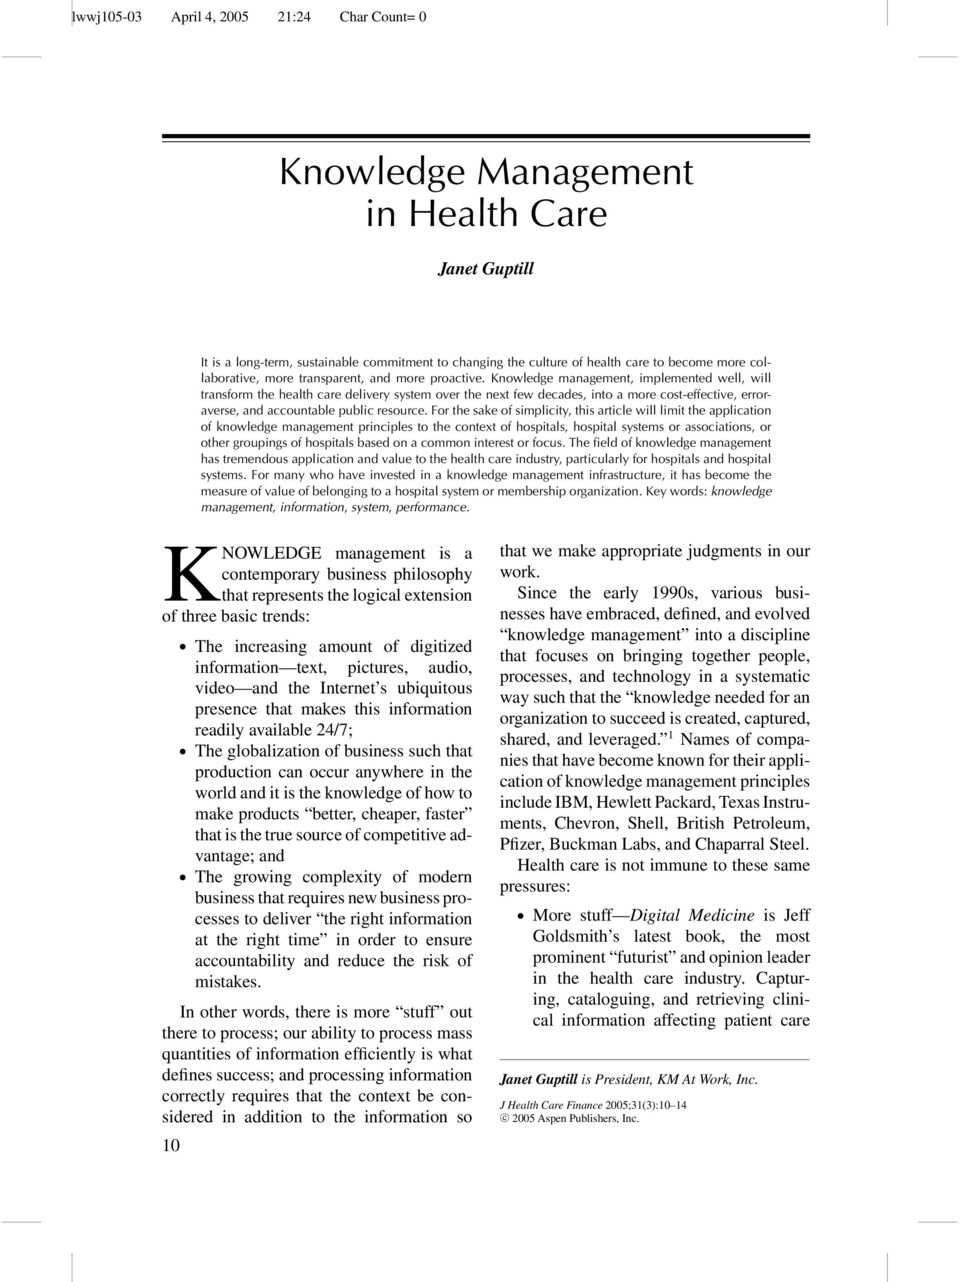 For the sake of simplicity, this article will limit the application of knowledge management principles to the context of hospitals, hospital systems or associations, or other groupings of hospitals